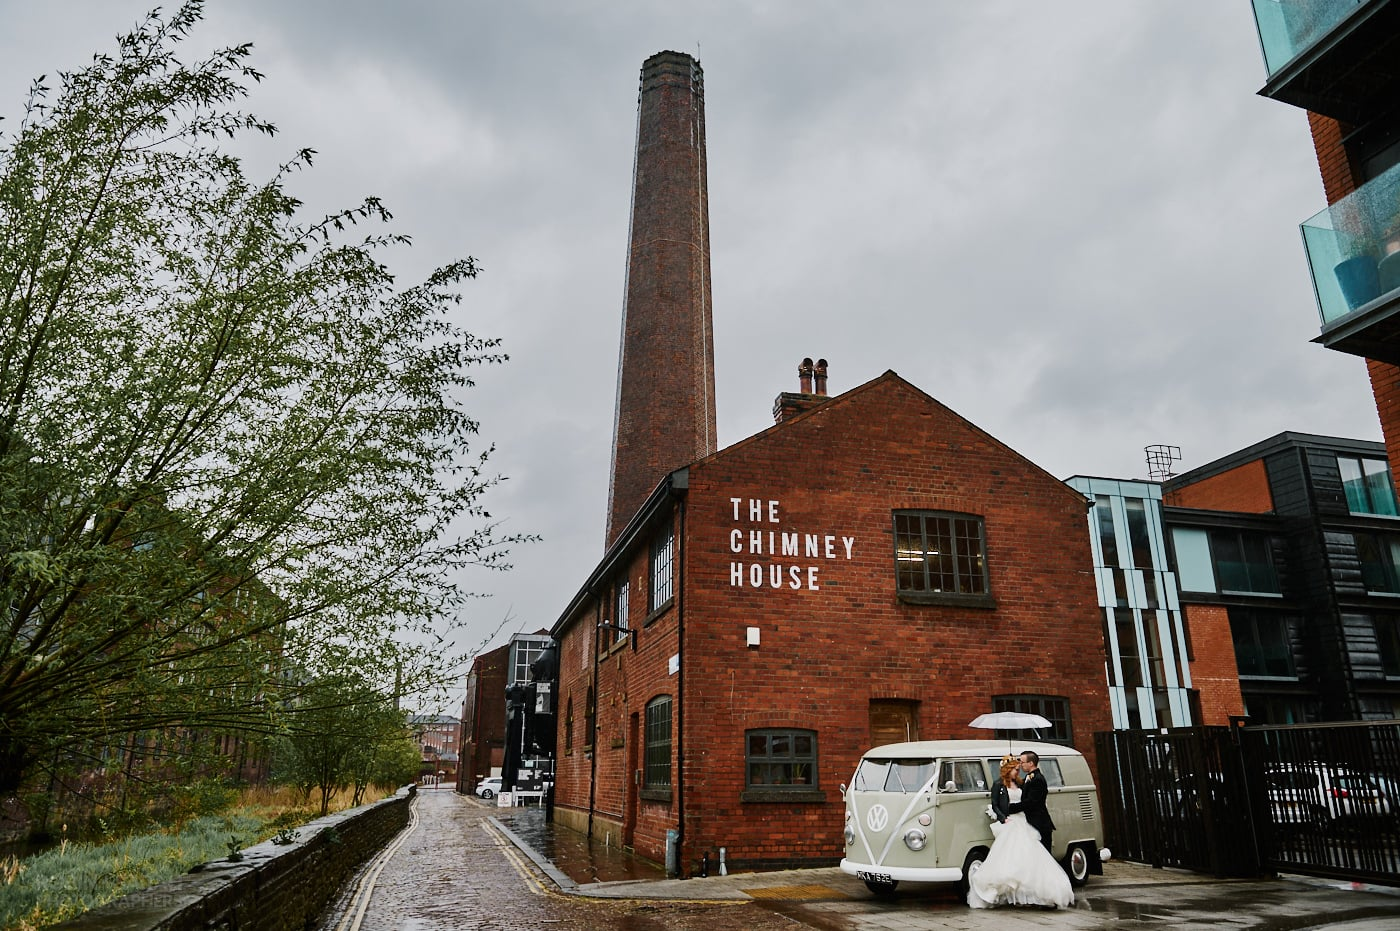 View of The Chimney House wedding venue in Sheffield with bride and groom standing together with camper van